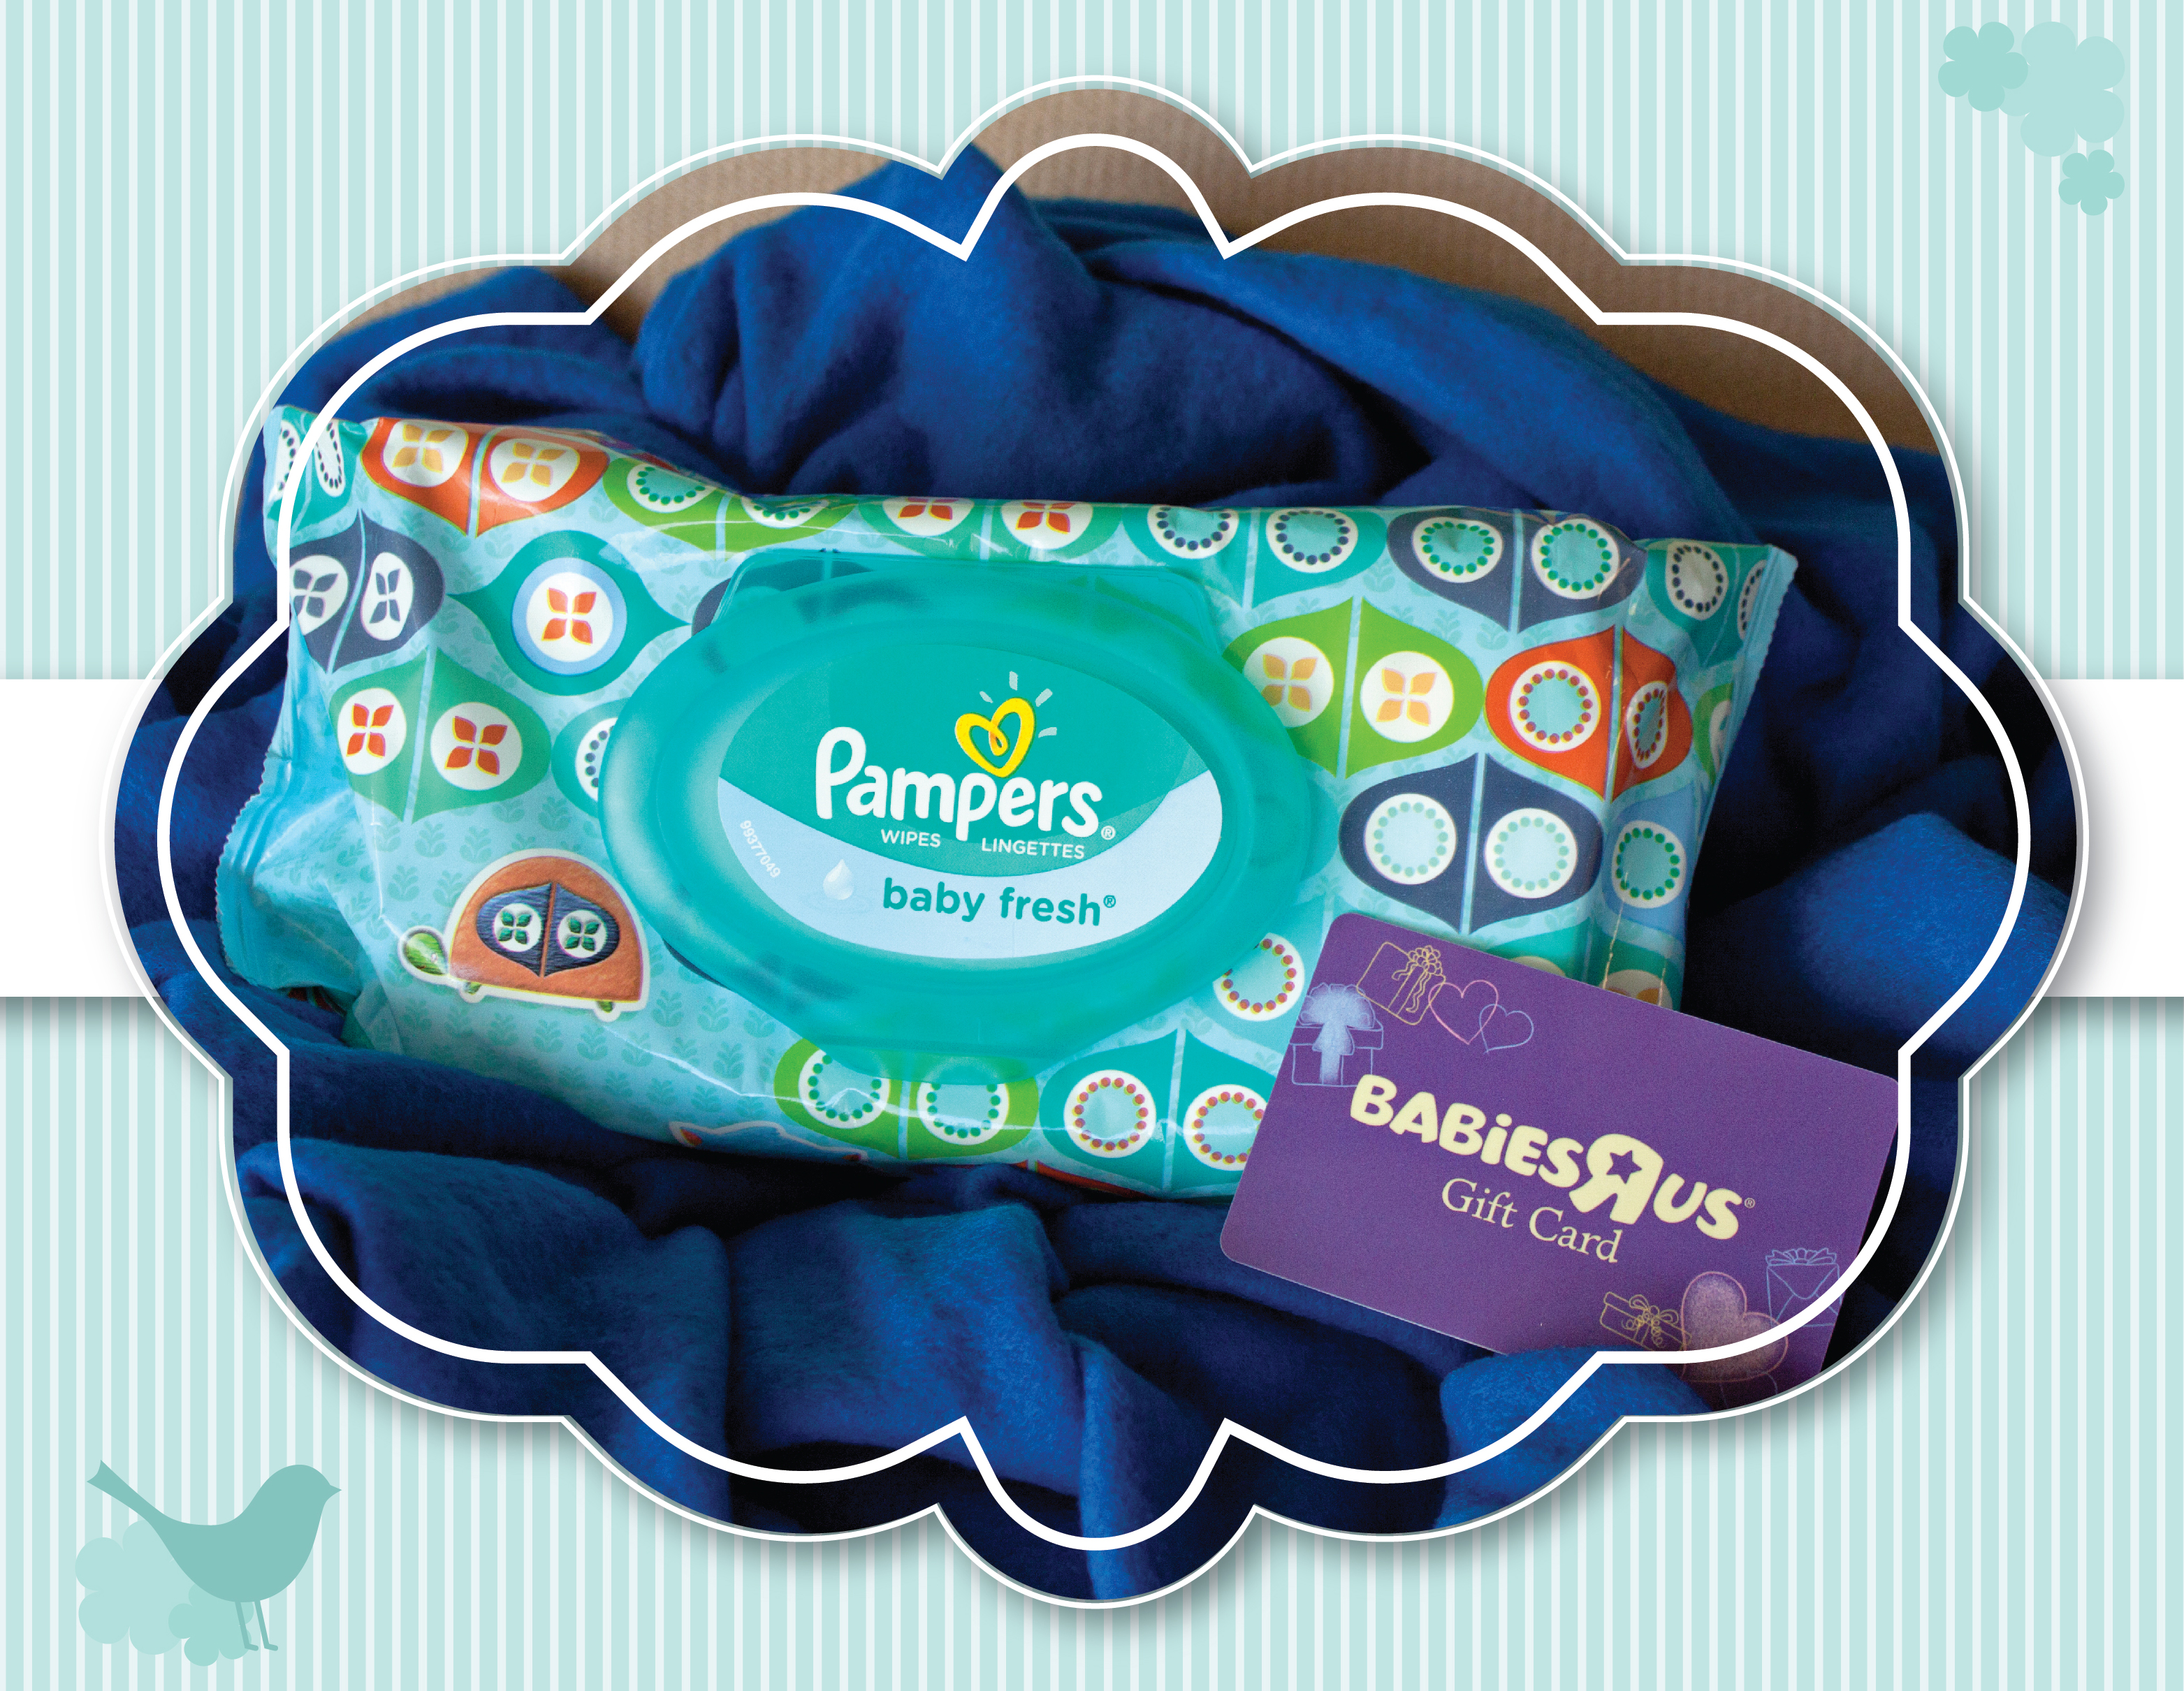 Pampers Swaddlers at Babies R Us